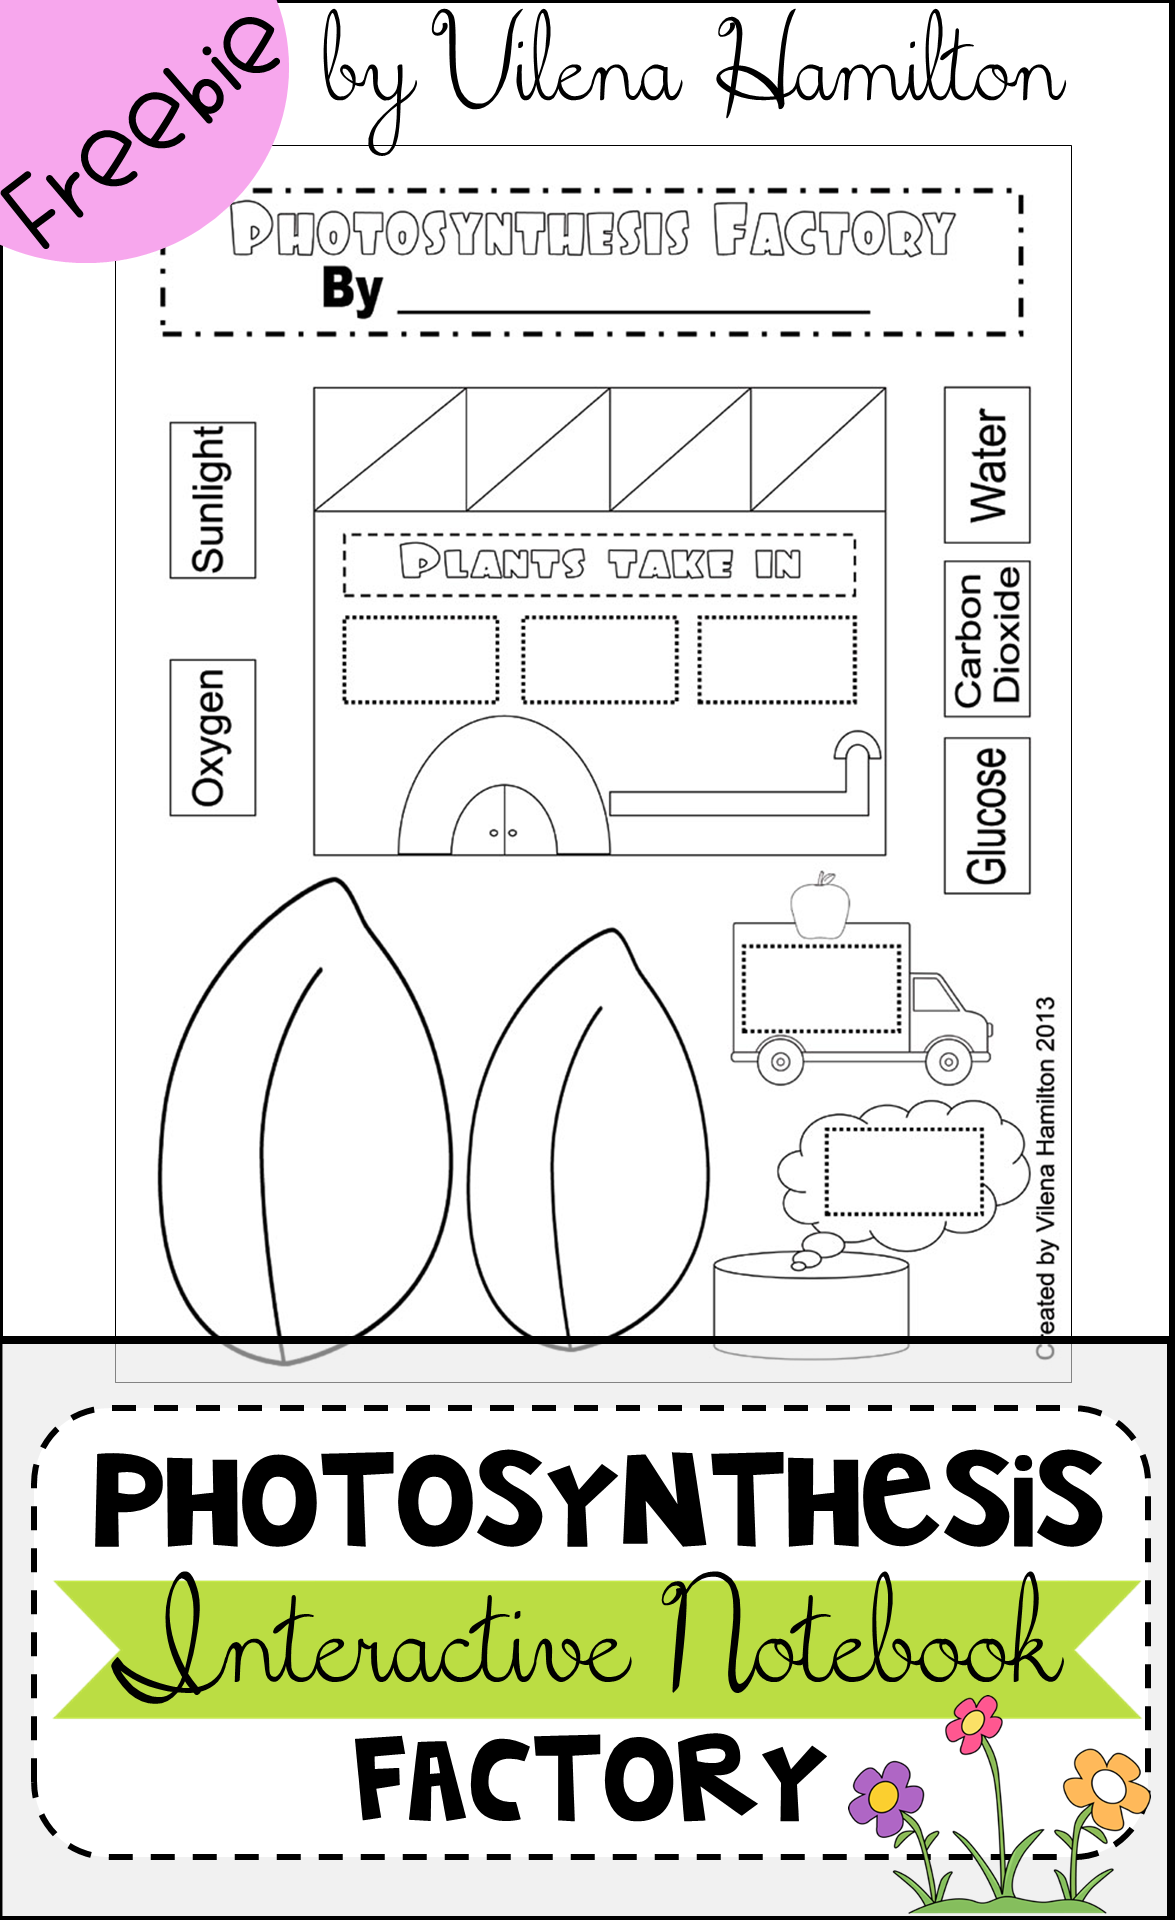 32 How Does Photosynthesis Work Label The Diagram Answer